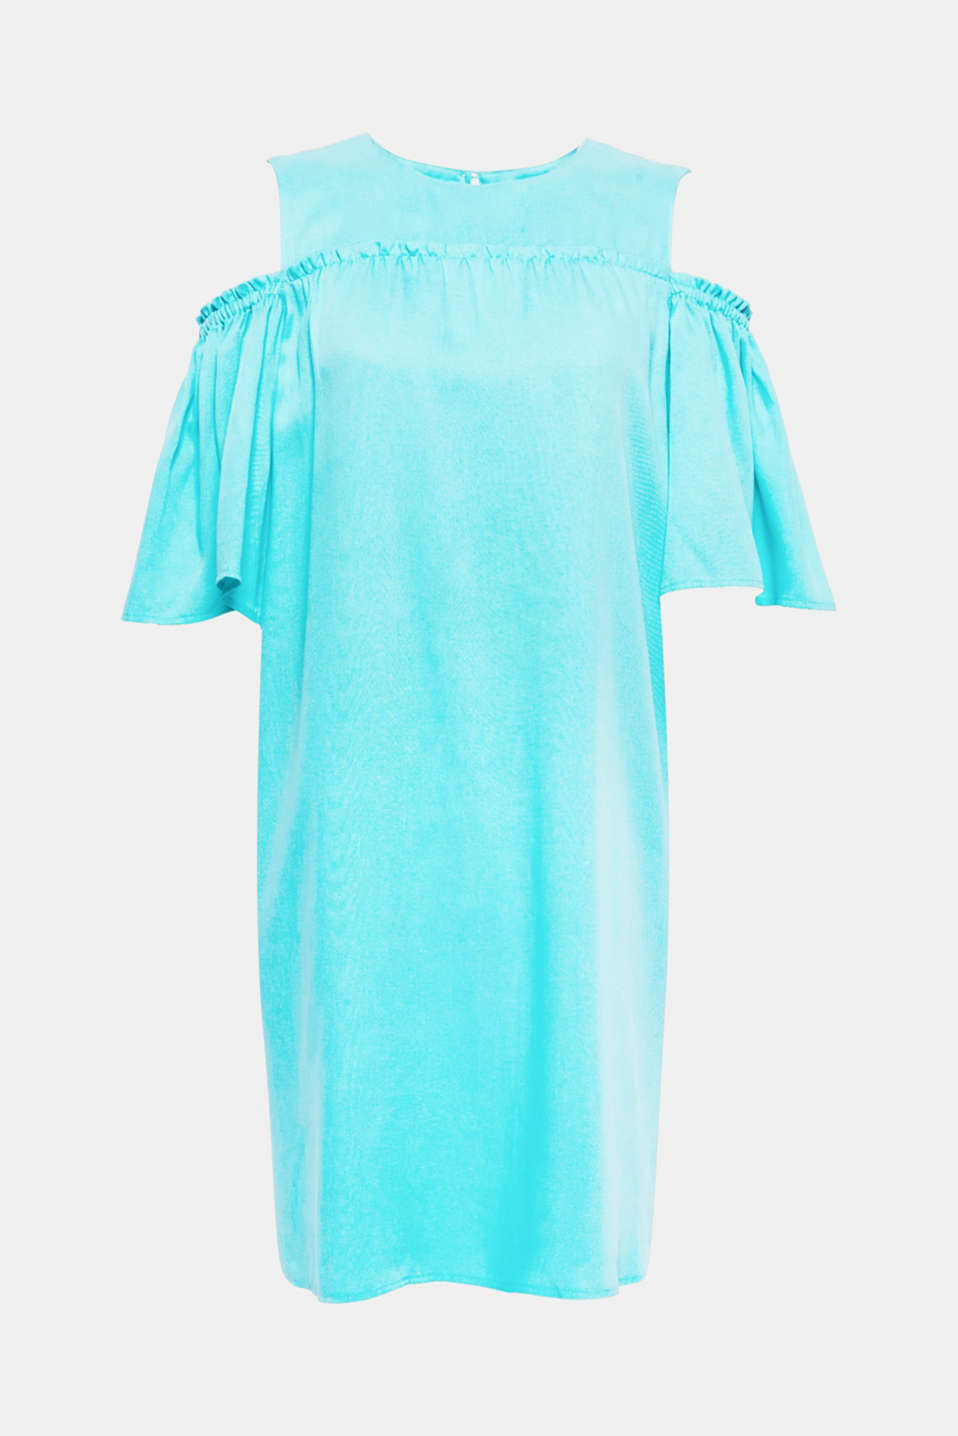 Happy summer: this airy, textured lyocell dress in a cold-shoulder look with wide sleeves exudes nothing but good vibes!